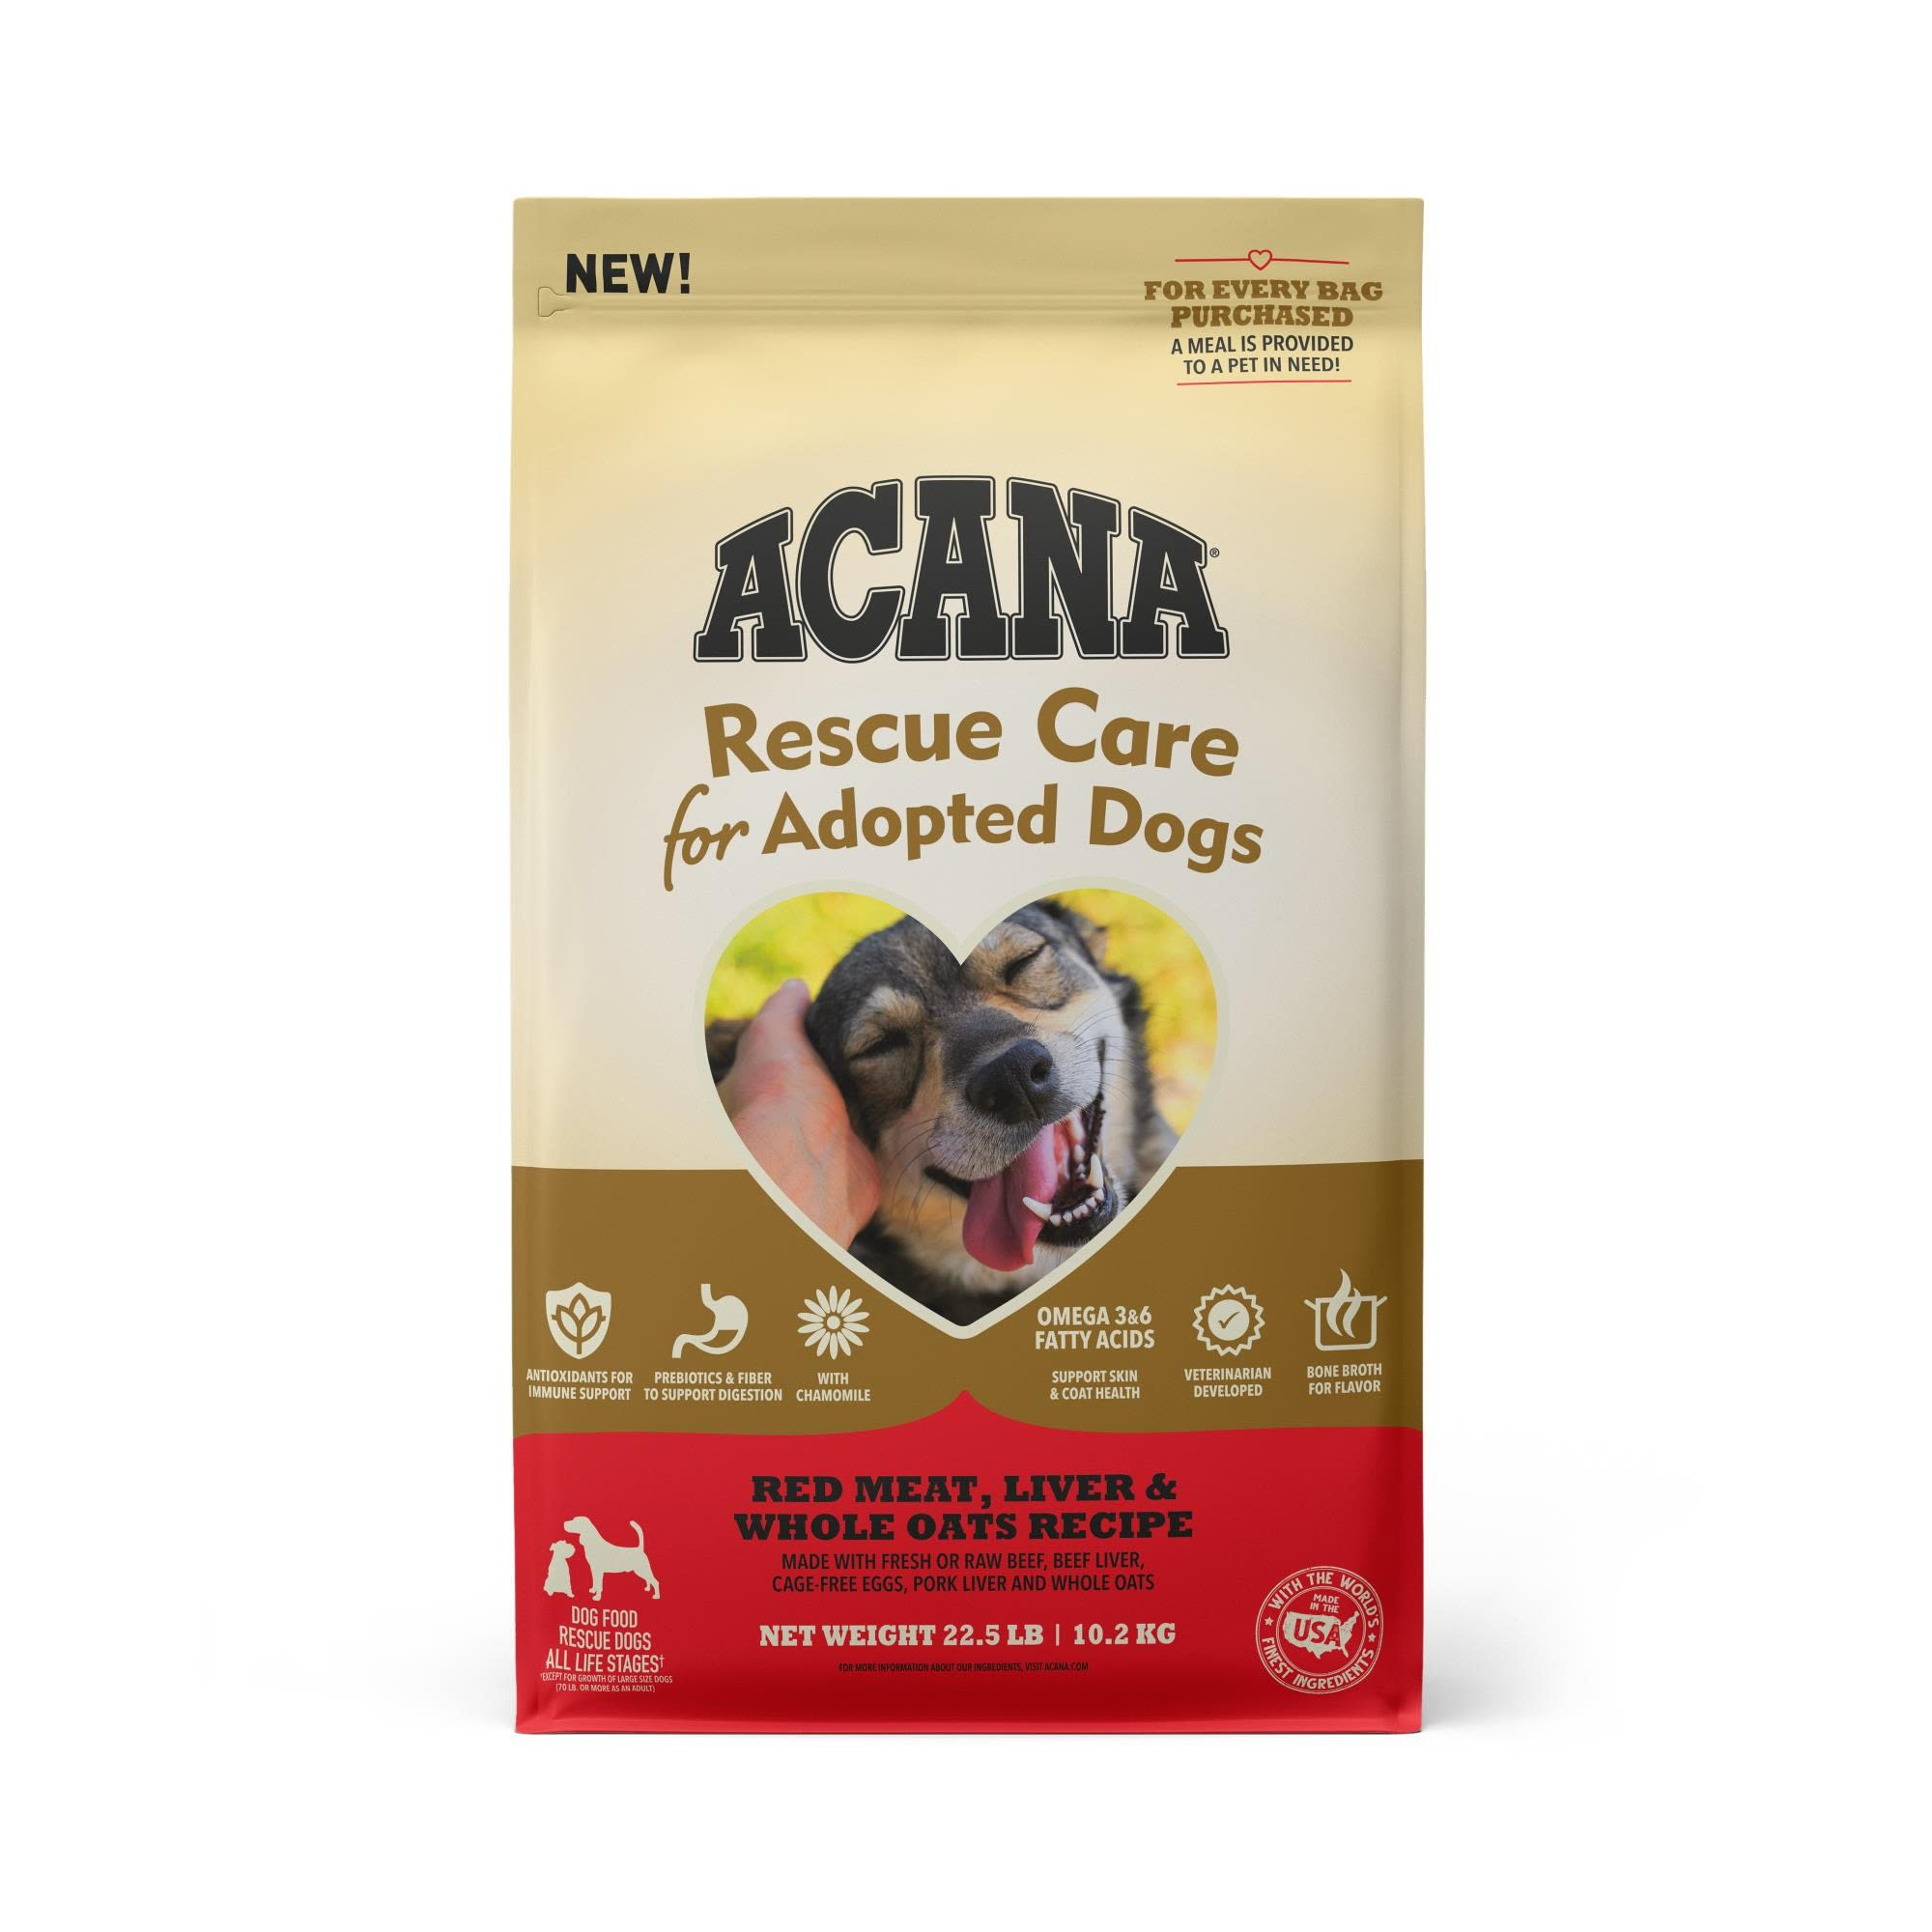 ACANA Rescue Care For Adopted Dogs Red Meat, Liver & Whole Oats Recipe Premium Dry Food, 22.5 lbs.